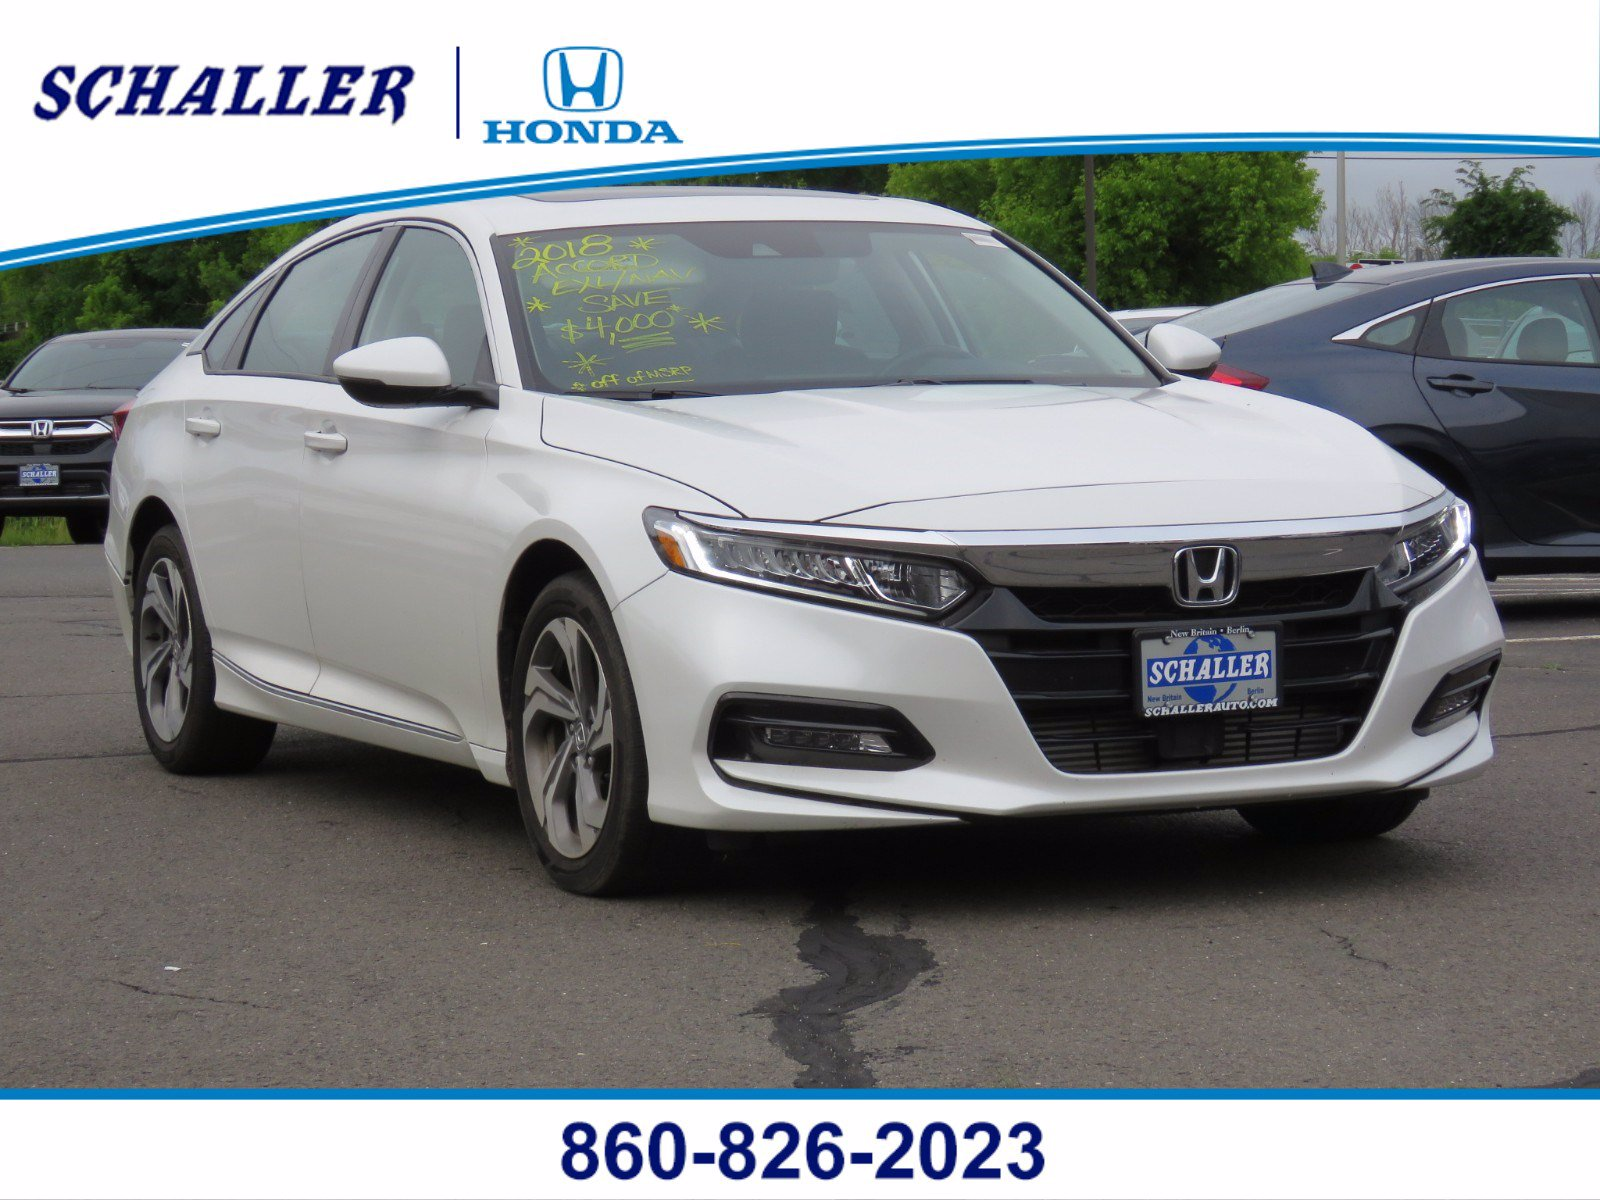 New 2018 Honda Accord EX-L Navi 2.0T